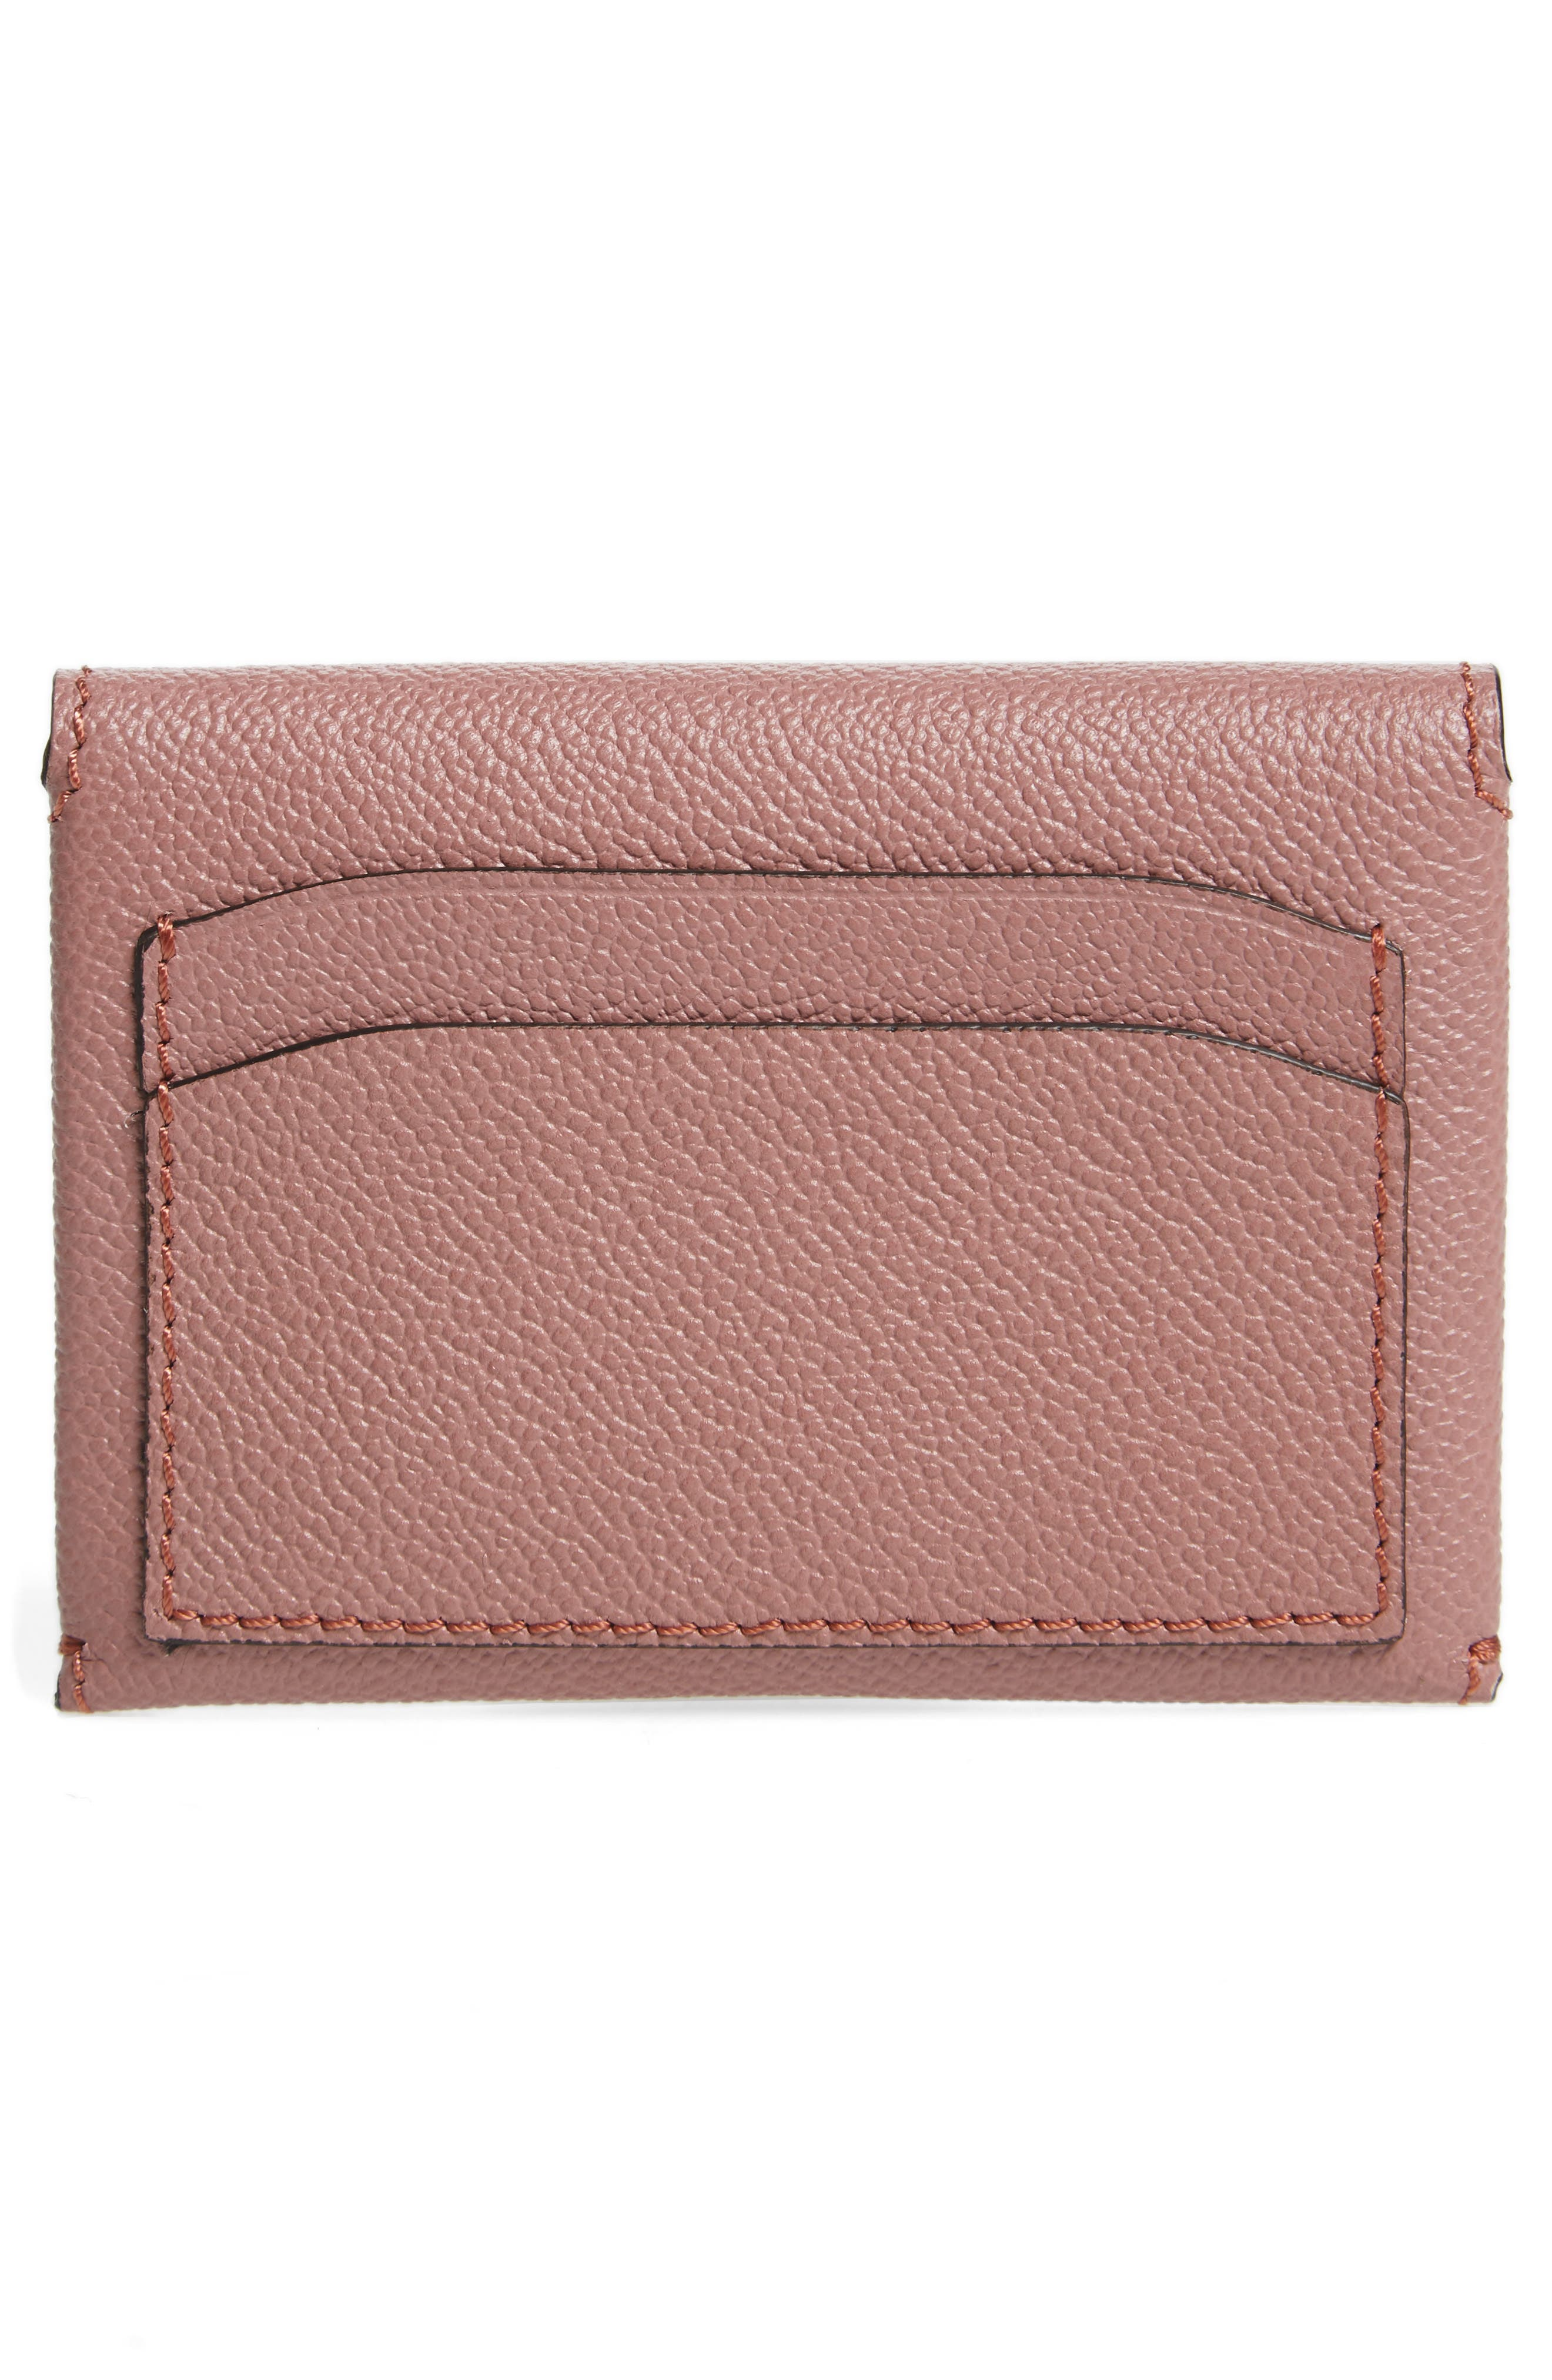 Mayfield Leather Card Case,                             Alternate thumbnail 3, color,